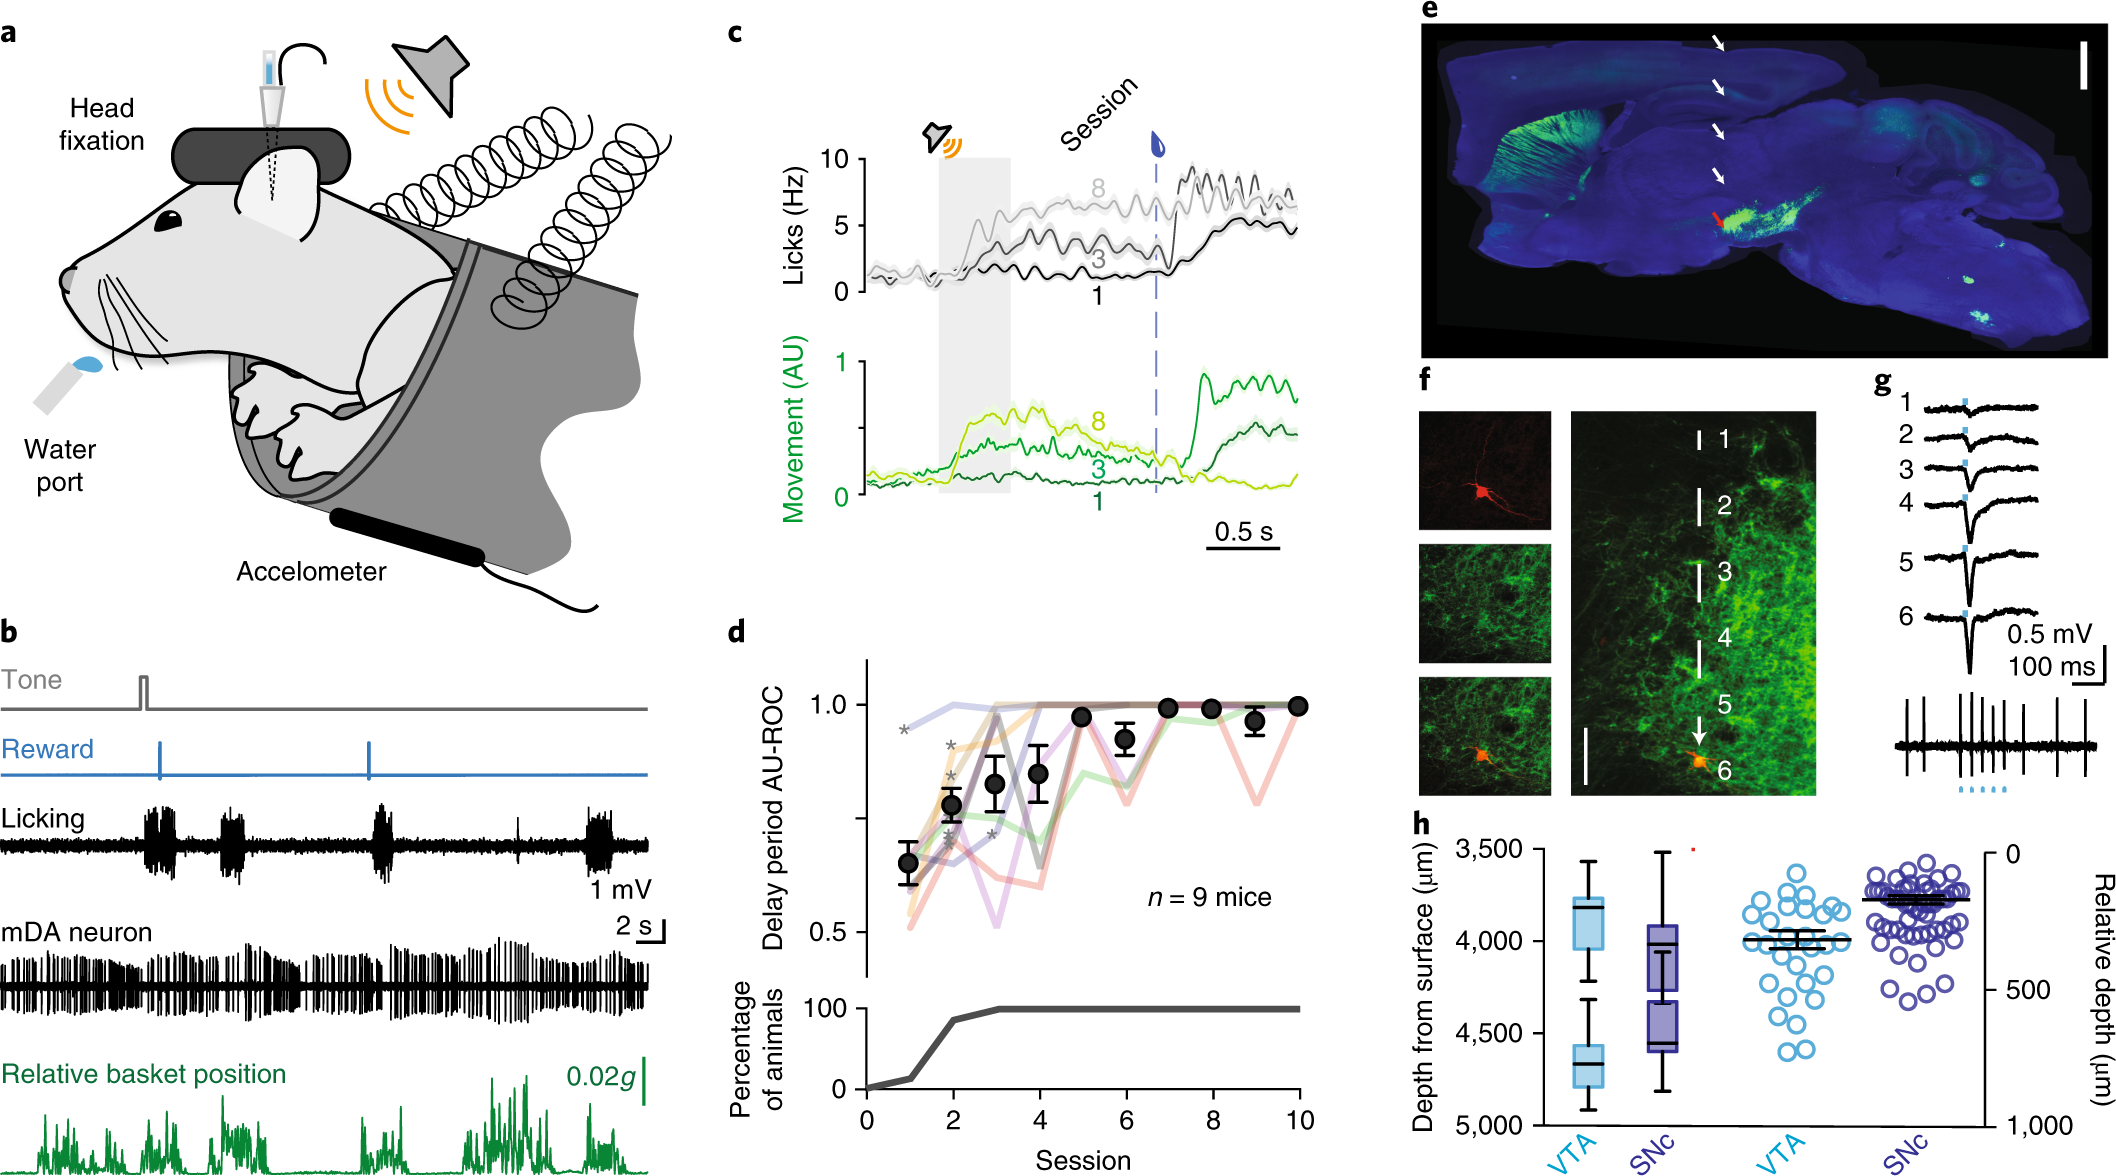 The Timing Of Action Determines Reward Prediction Signals In 555 Timer Circuit Electronic Key Code Lock Identified Midbrain Dopamine Neurons Nature Neuroscience